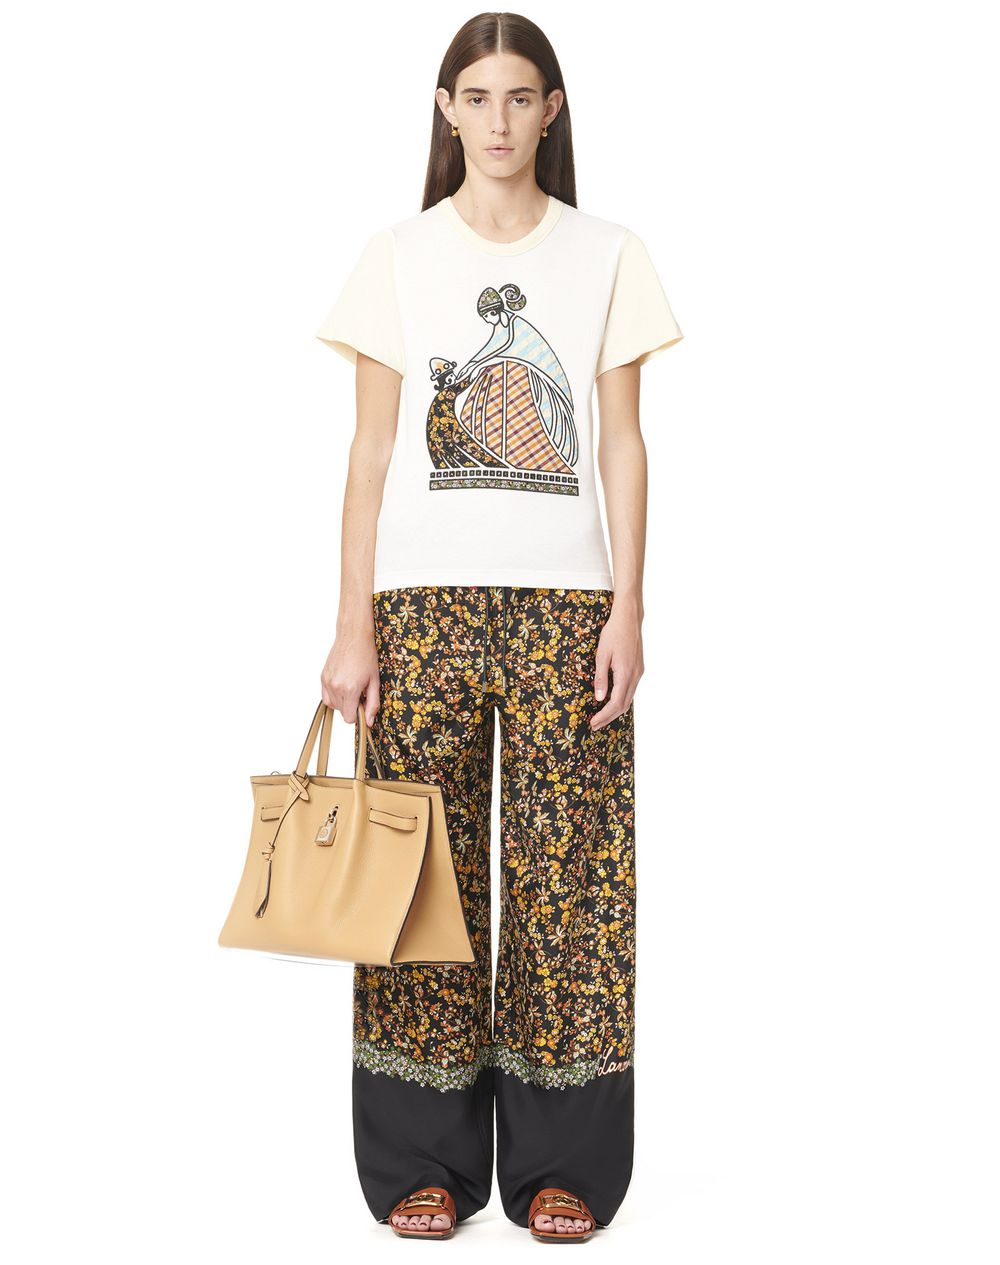 T-SHIRT WITH PATCHWORK ARTWORK - Lanvin